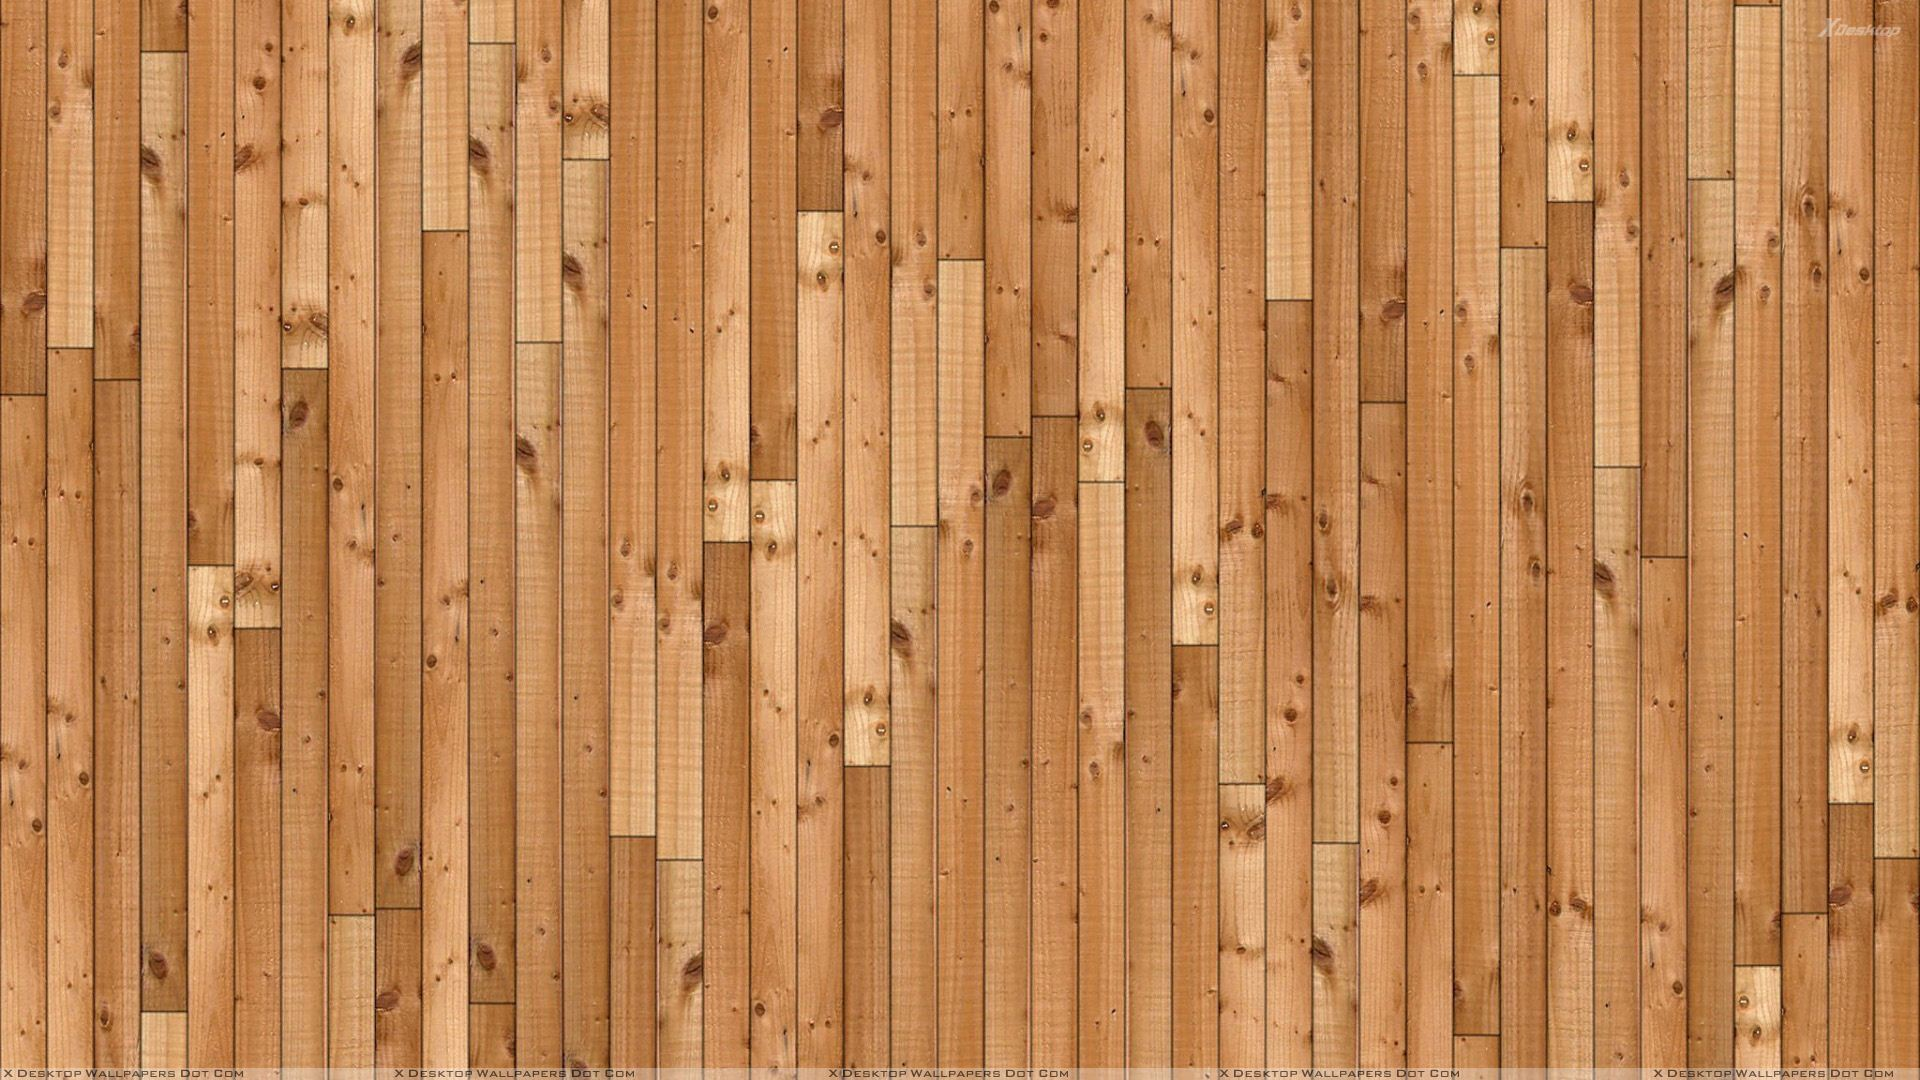 Https Xdesktopwallpapers Com Wooden Stipe Background 6334 Php